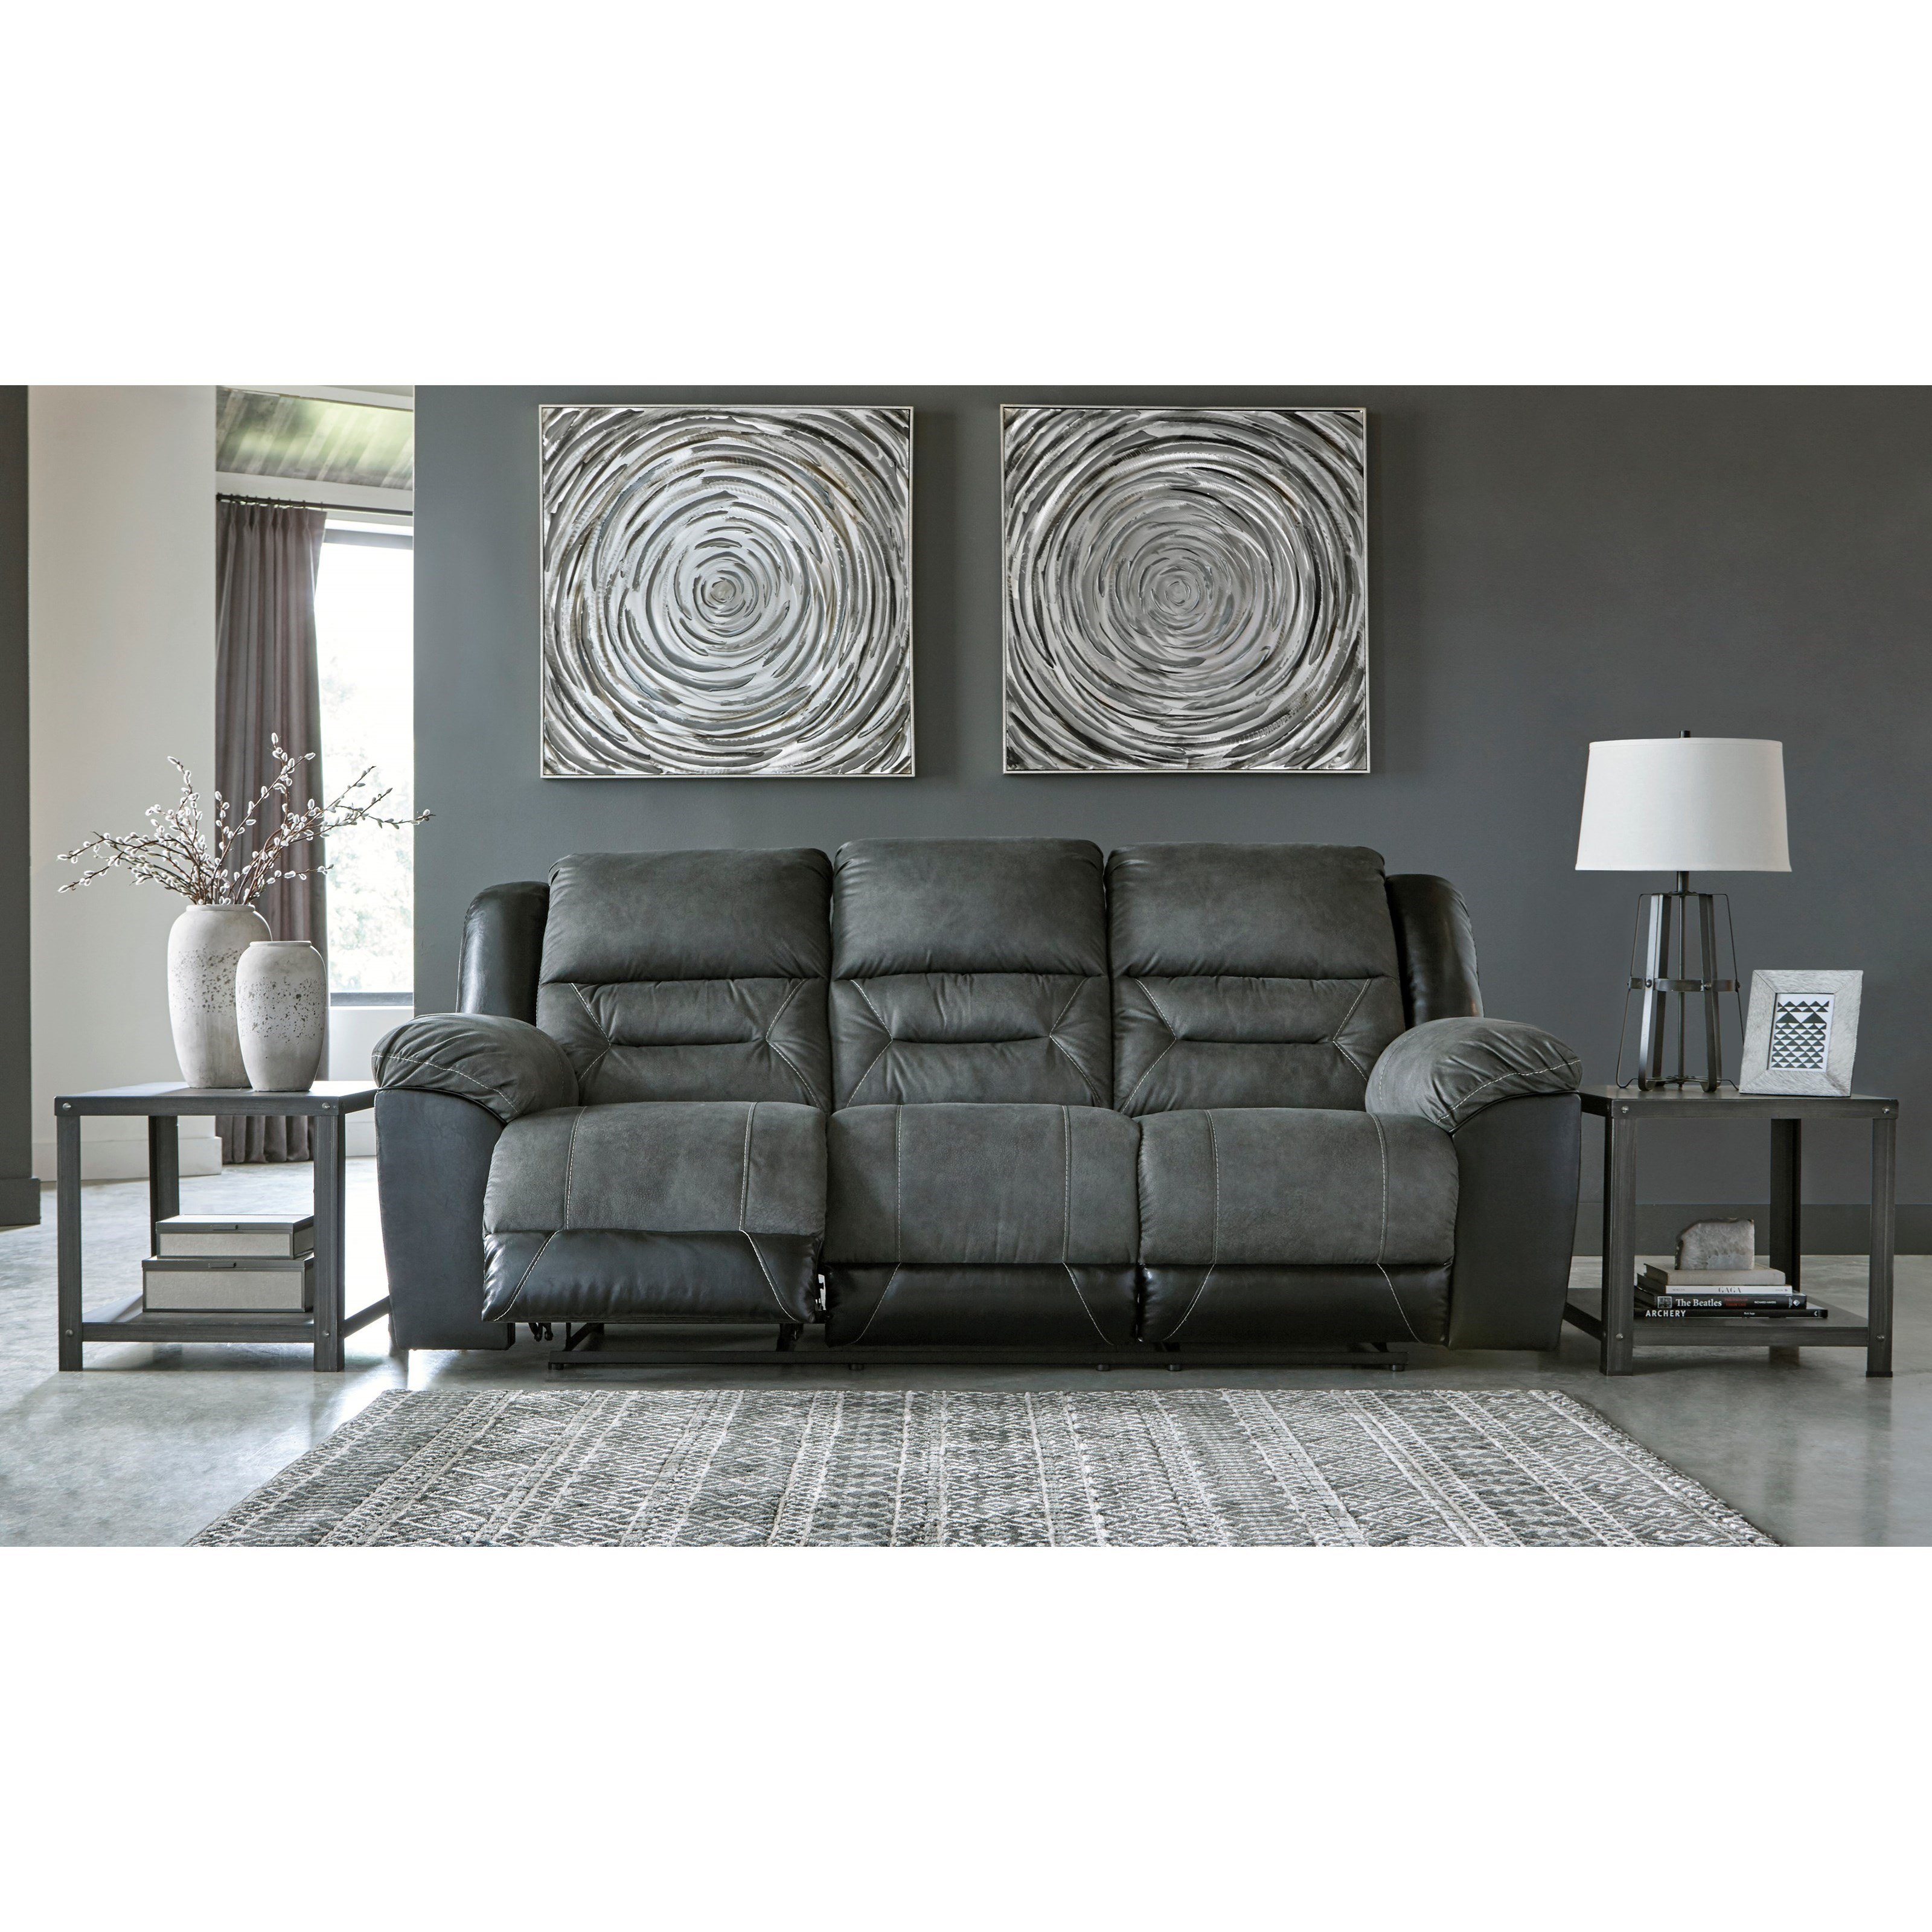 Casual Reclining Sofa With Pillow Arms By Signature Design